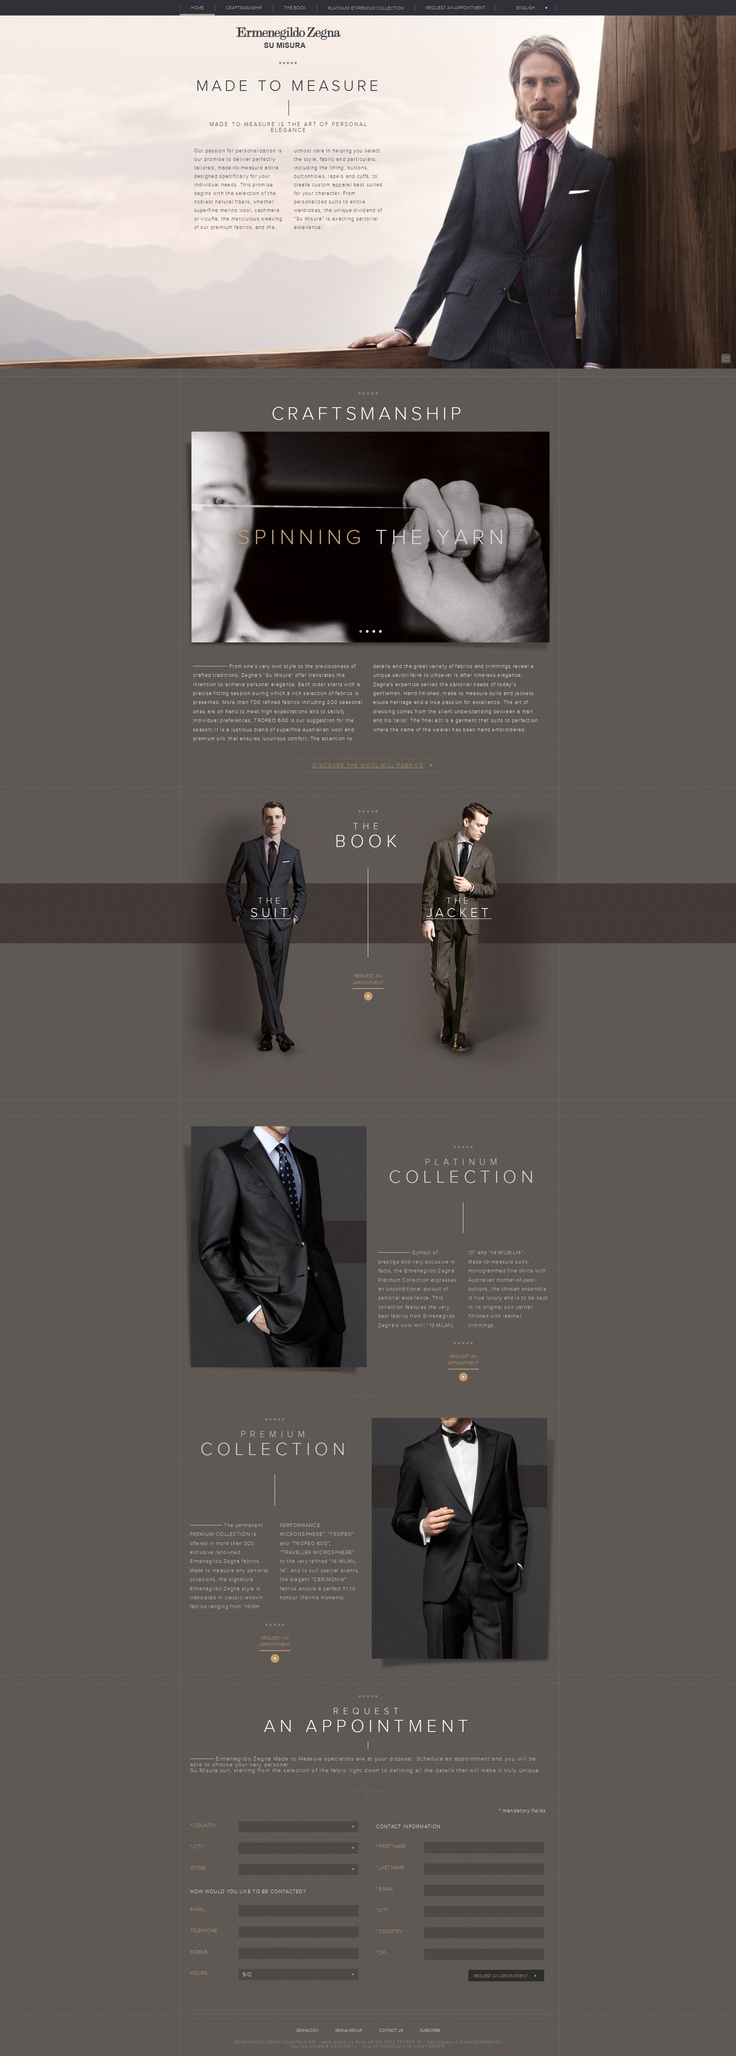 #houseofwebsites | Ermenegildo Zegna Web Design